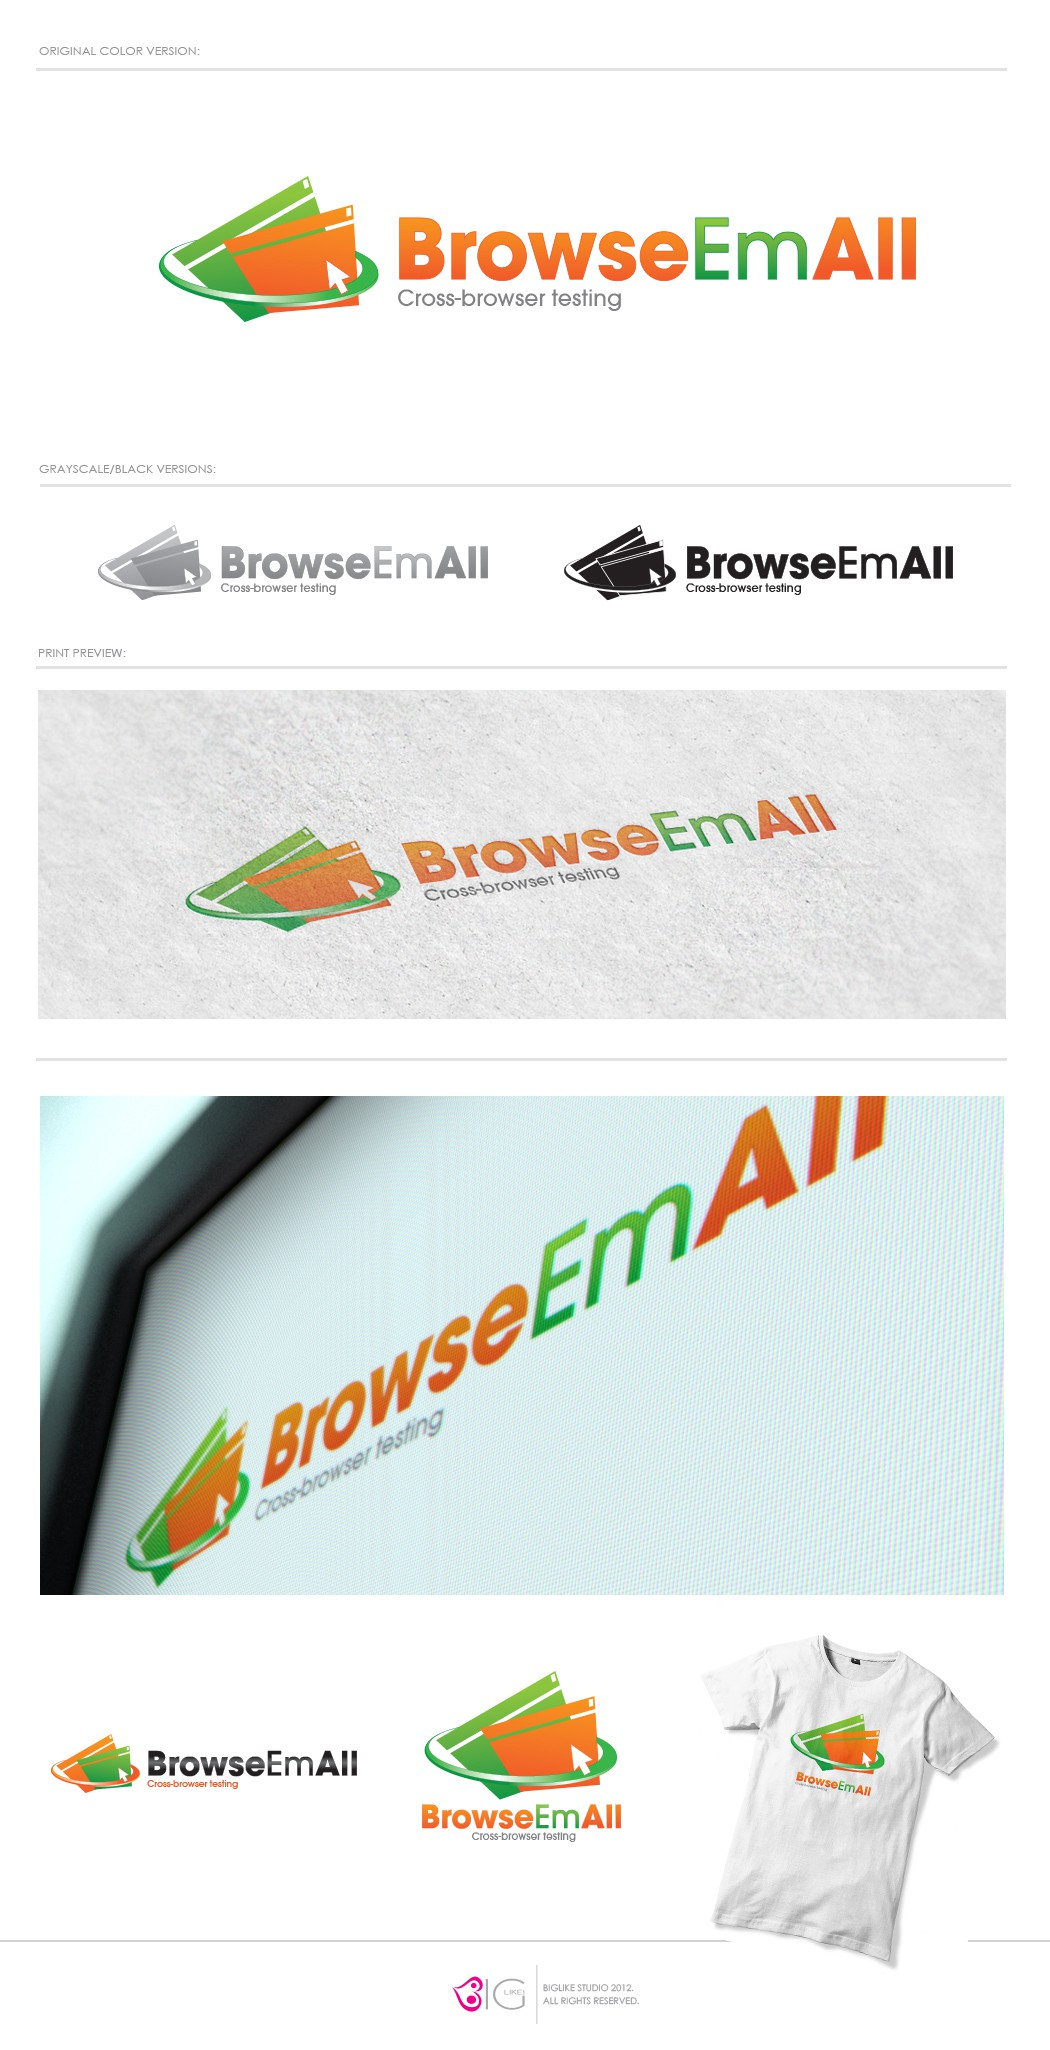 BrowseEmAll needs a new logo